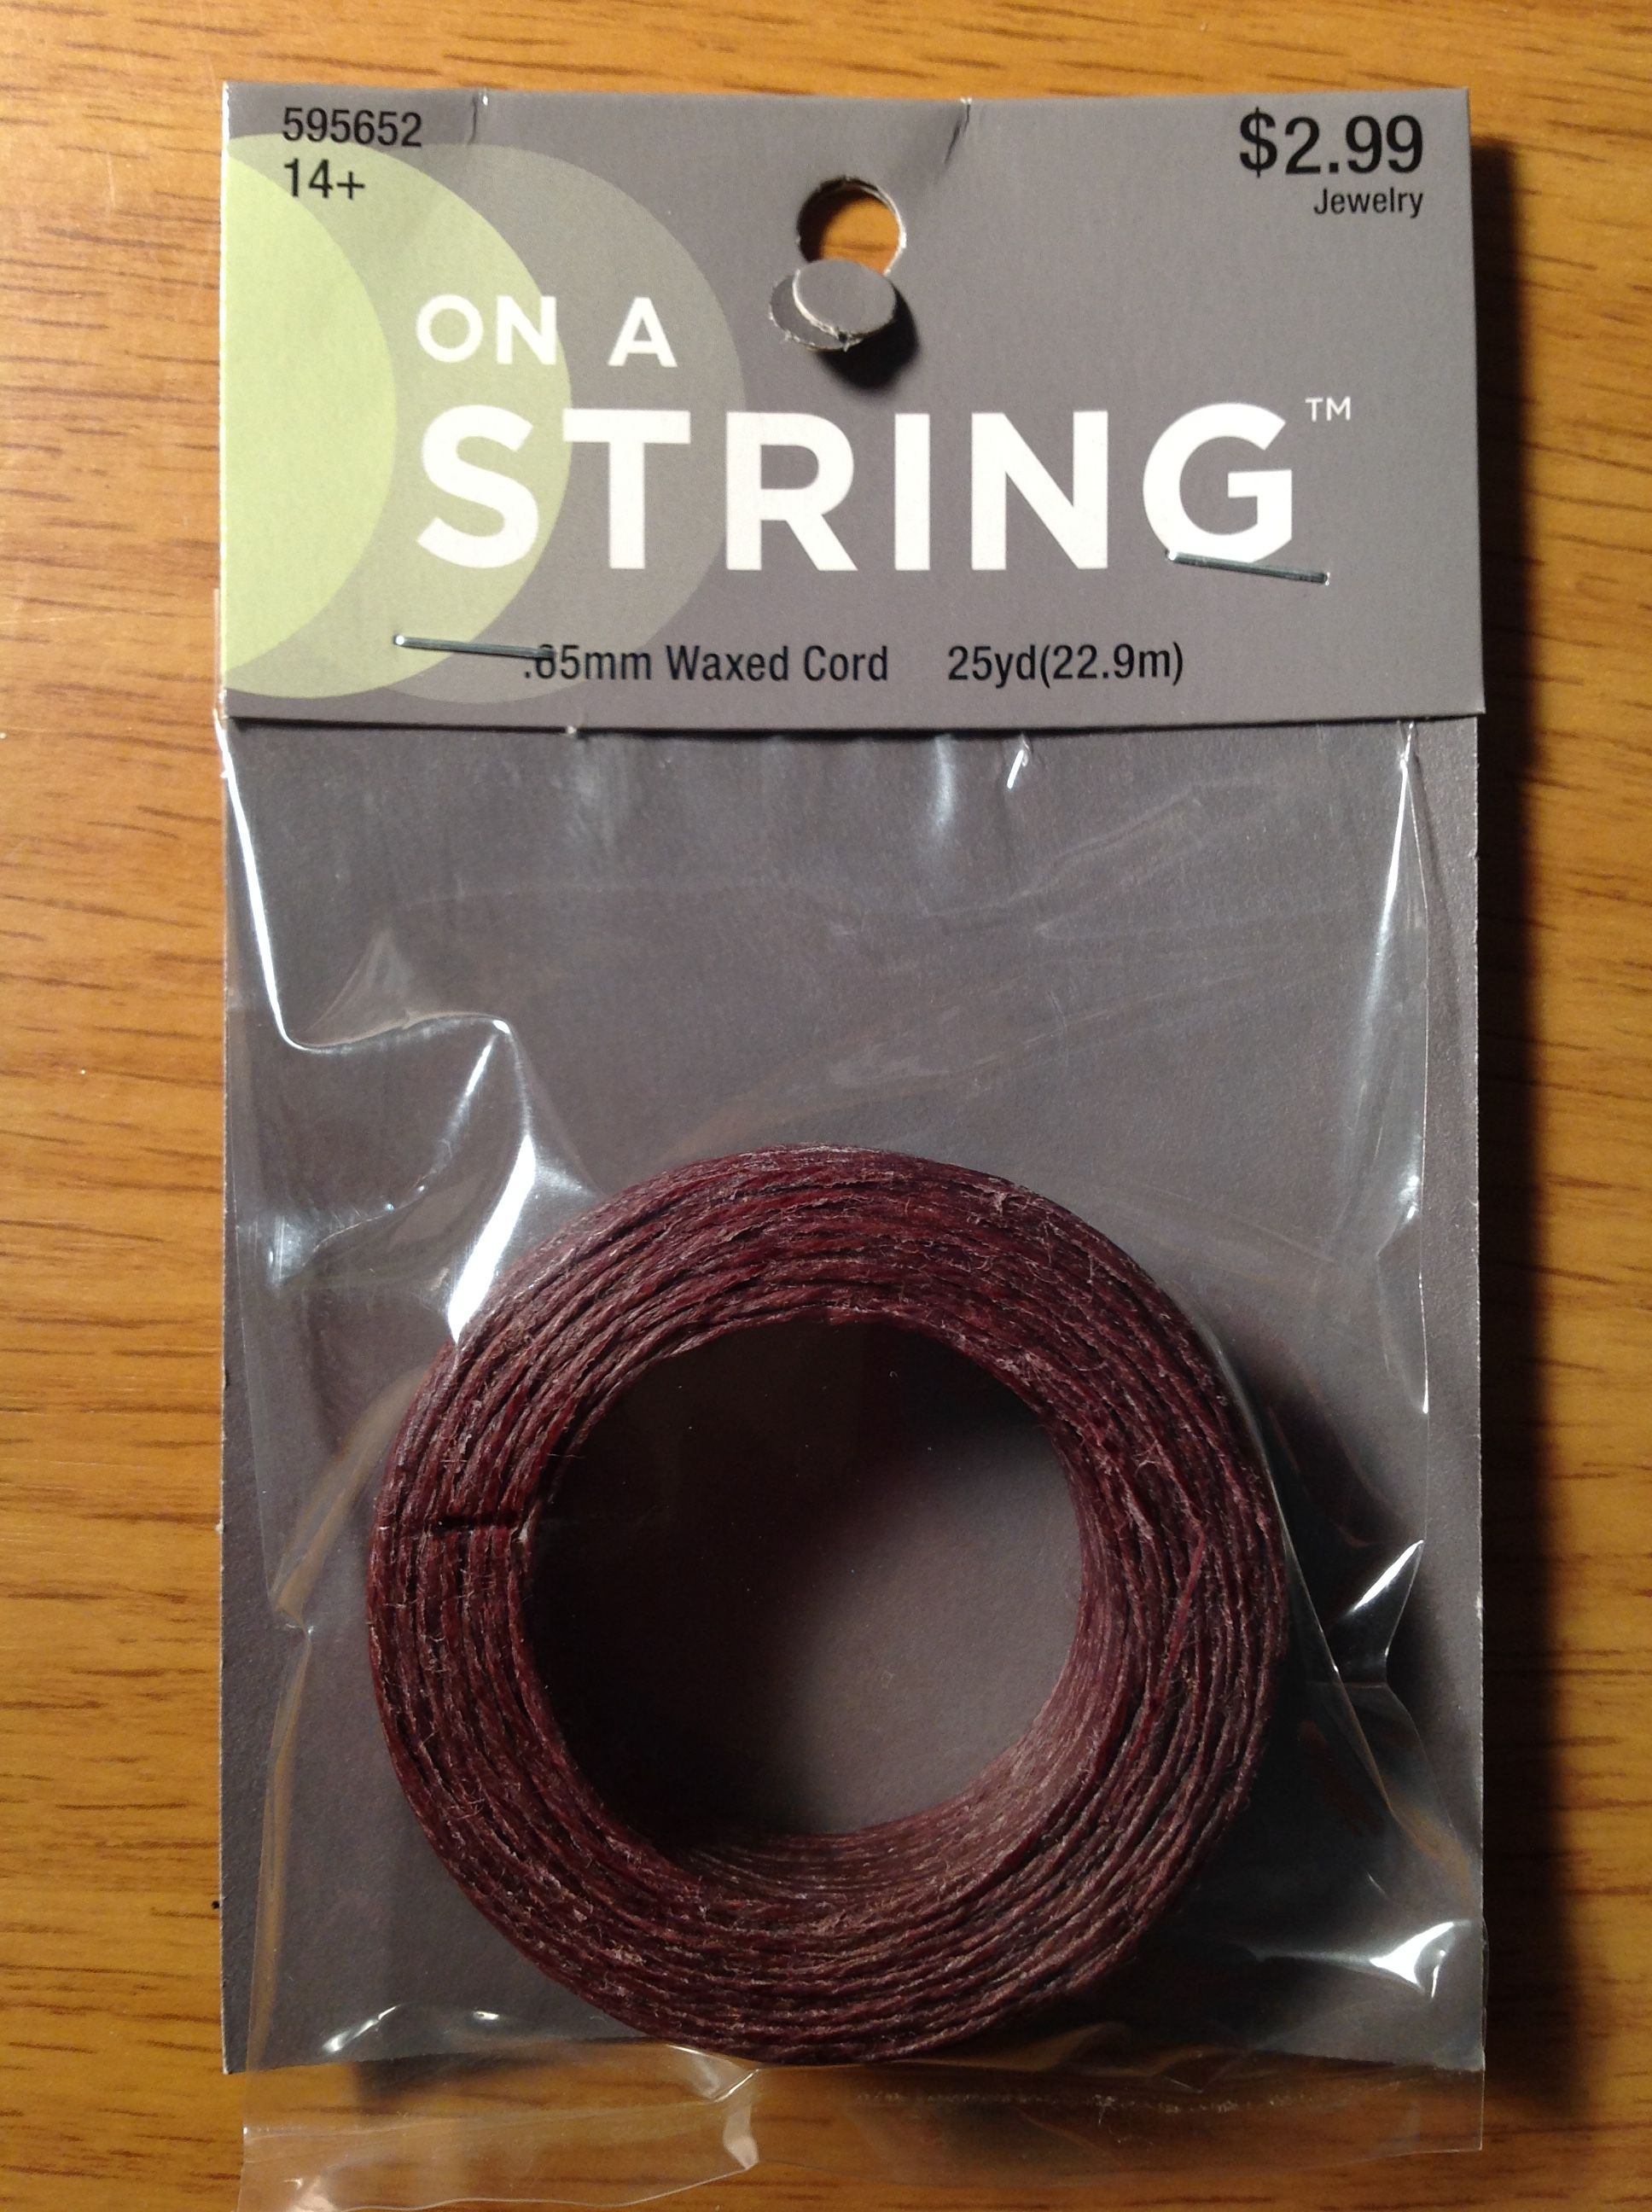 On a String .65mm Waxed Cord - Brown.  25 yds.  Hobby Lobby 11/12/2016  $1.49 ($1.57 = ~ $0.0025/in.)